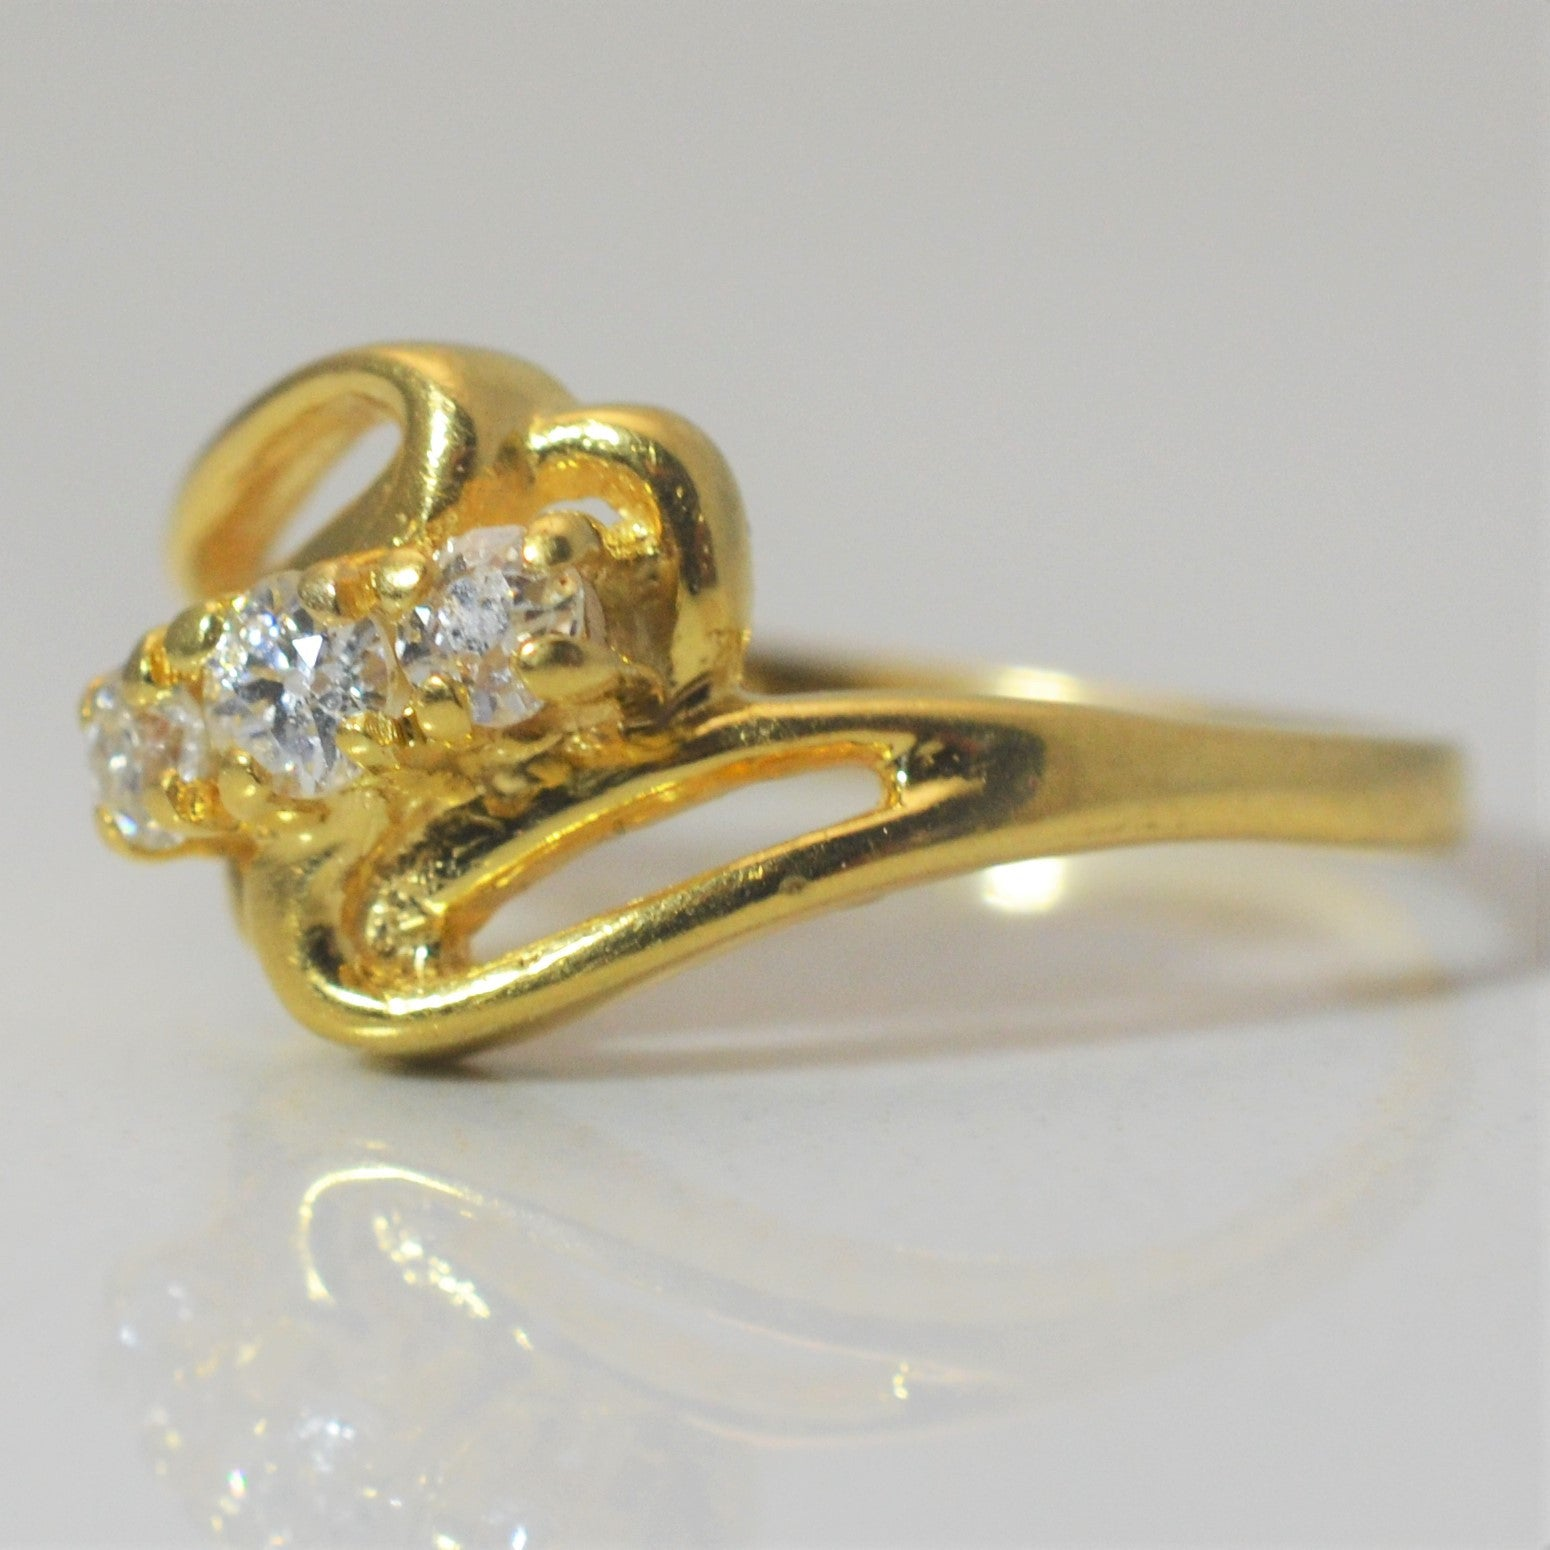 Vintage Bypass Three Stone Diamond Ring | 0.20 ctw, SZ 6.25 |